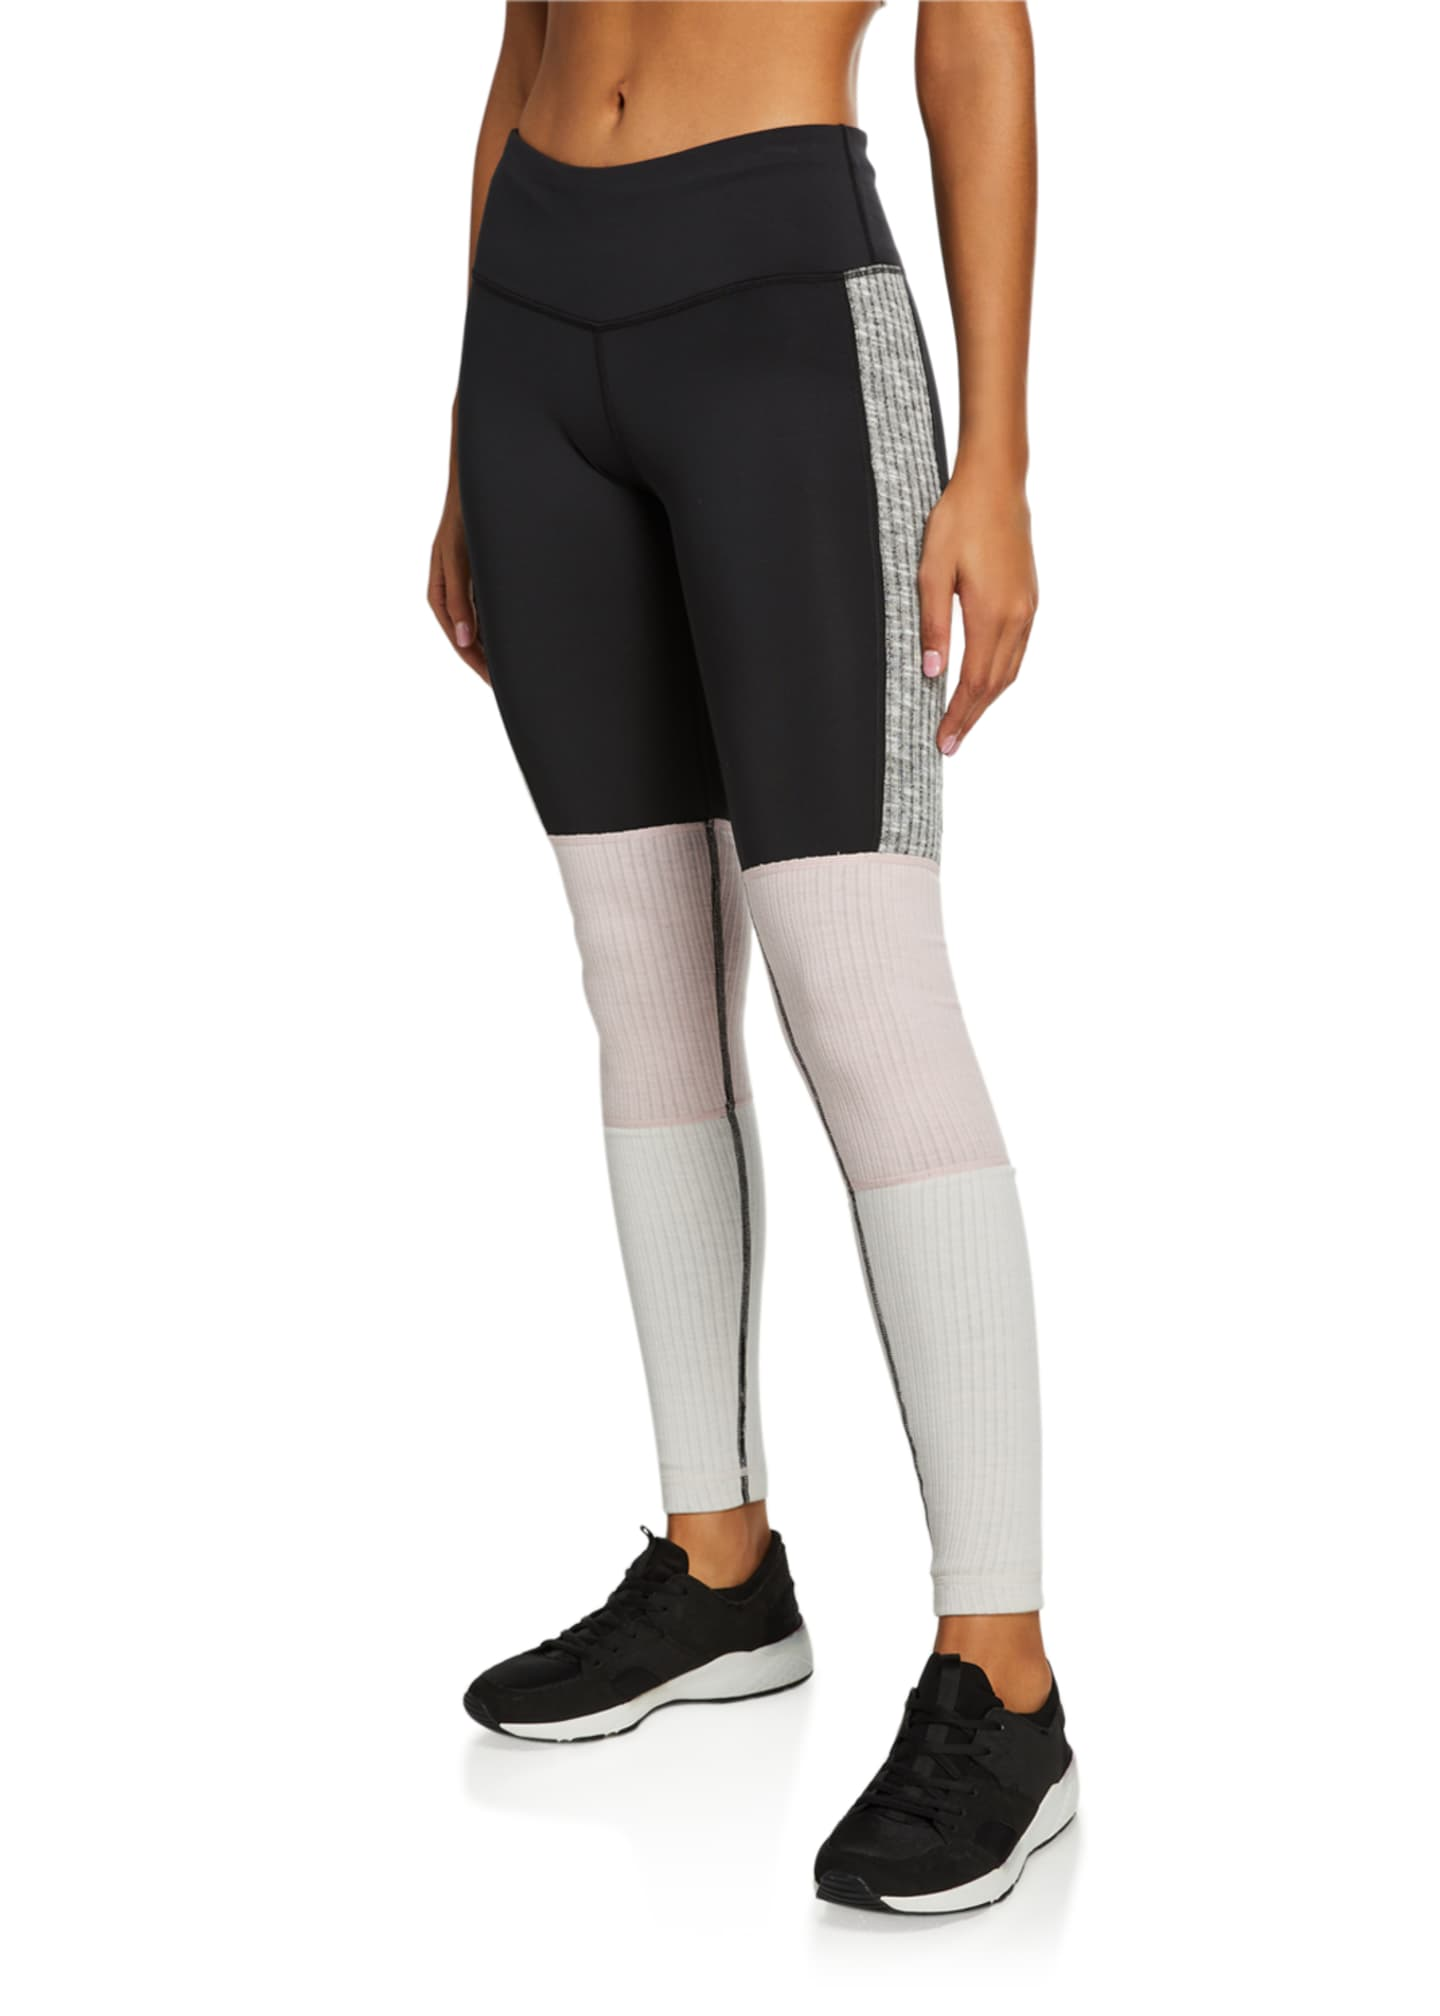 Lukka Lux Bring It Back Performance Leggings